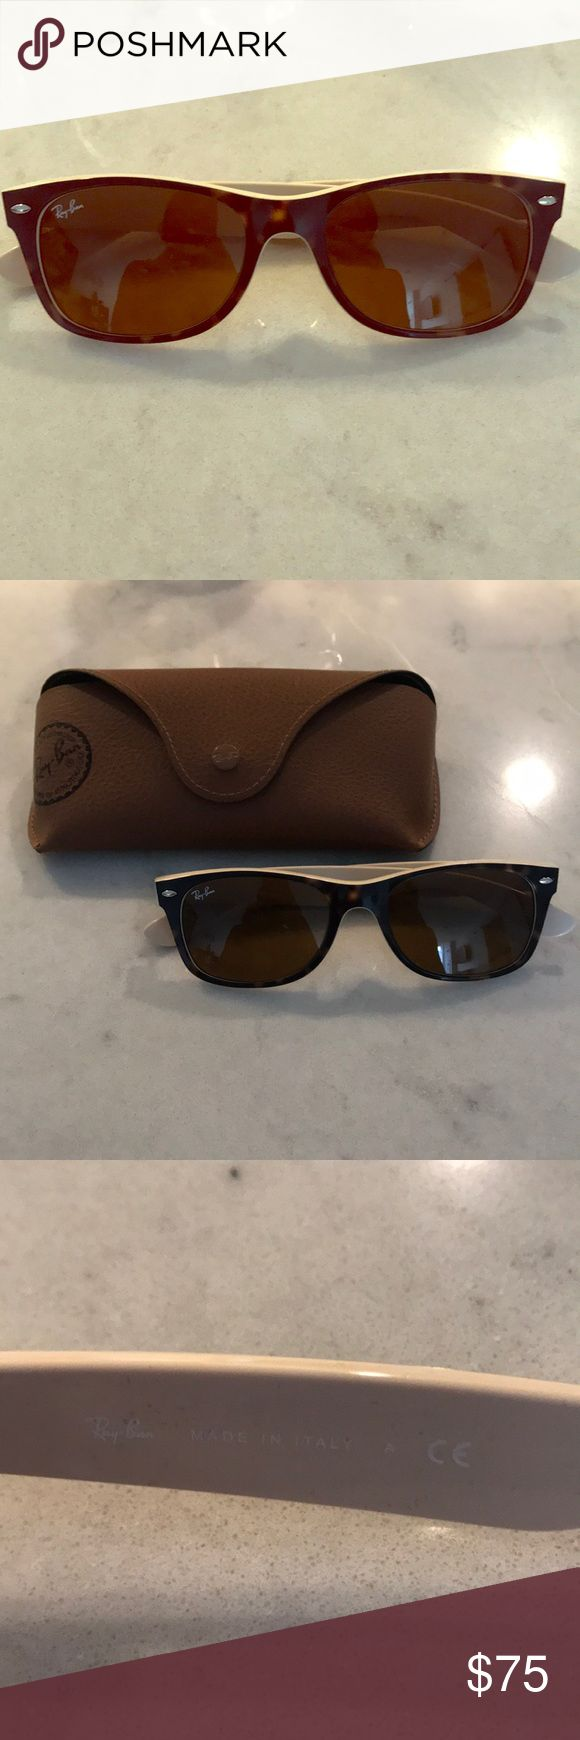 Ray-Ban Sunglasses Brand new sunglasses by Ray-Ban. Ray-Ban Accessories Sunglasses